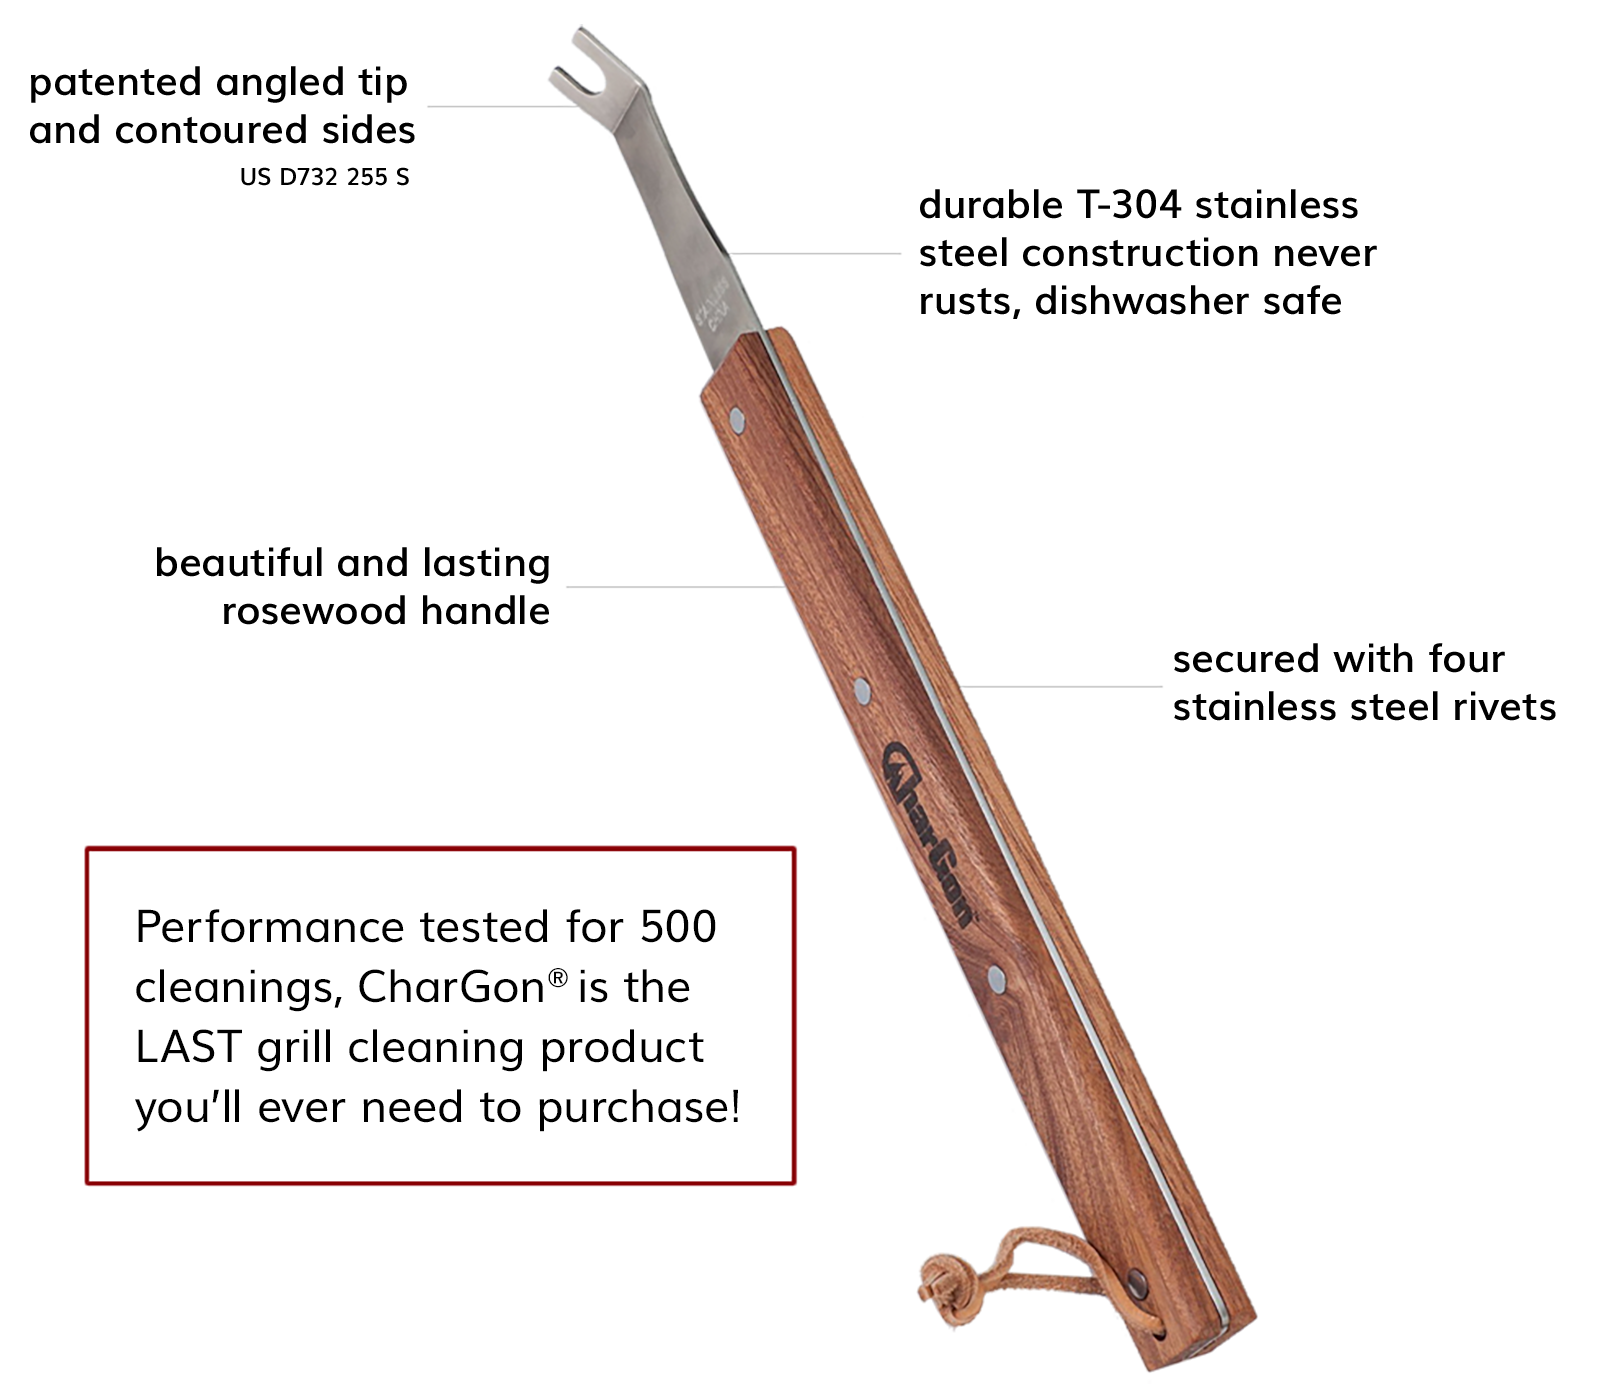 patented angled tip and contoured sides (US D732 255 S), durable T-304 stainless steel construction never rusts, dishwasher safe, beautiful and lasting rosewood handle, secured with four stainless steel rivets